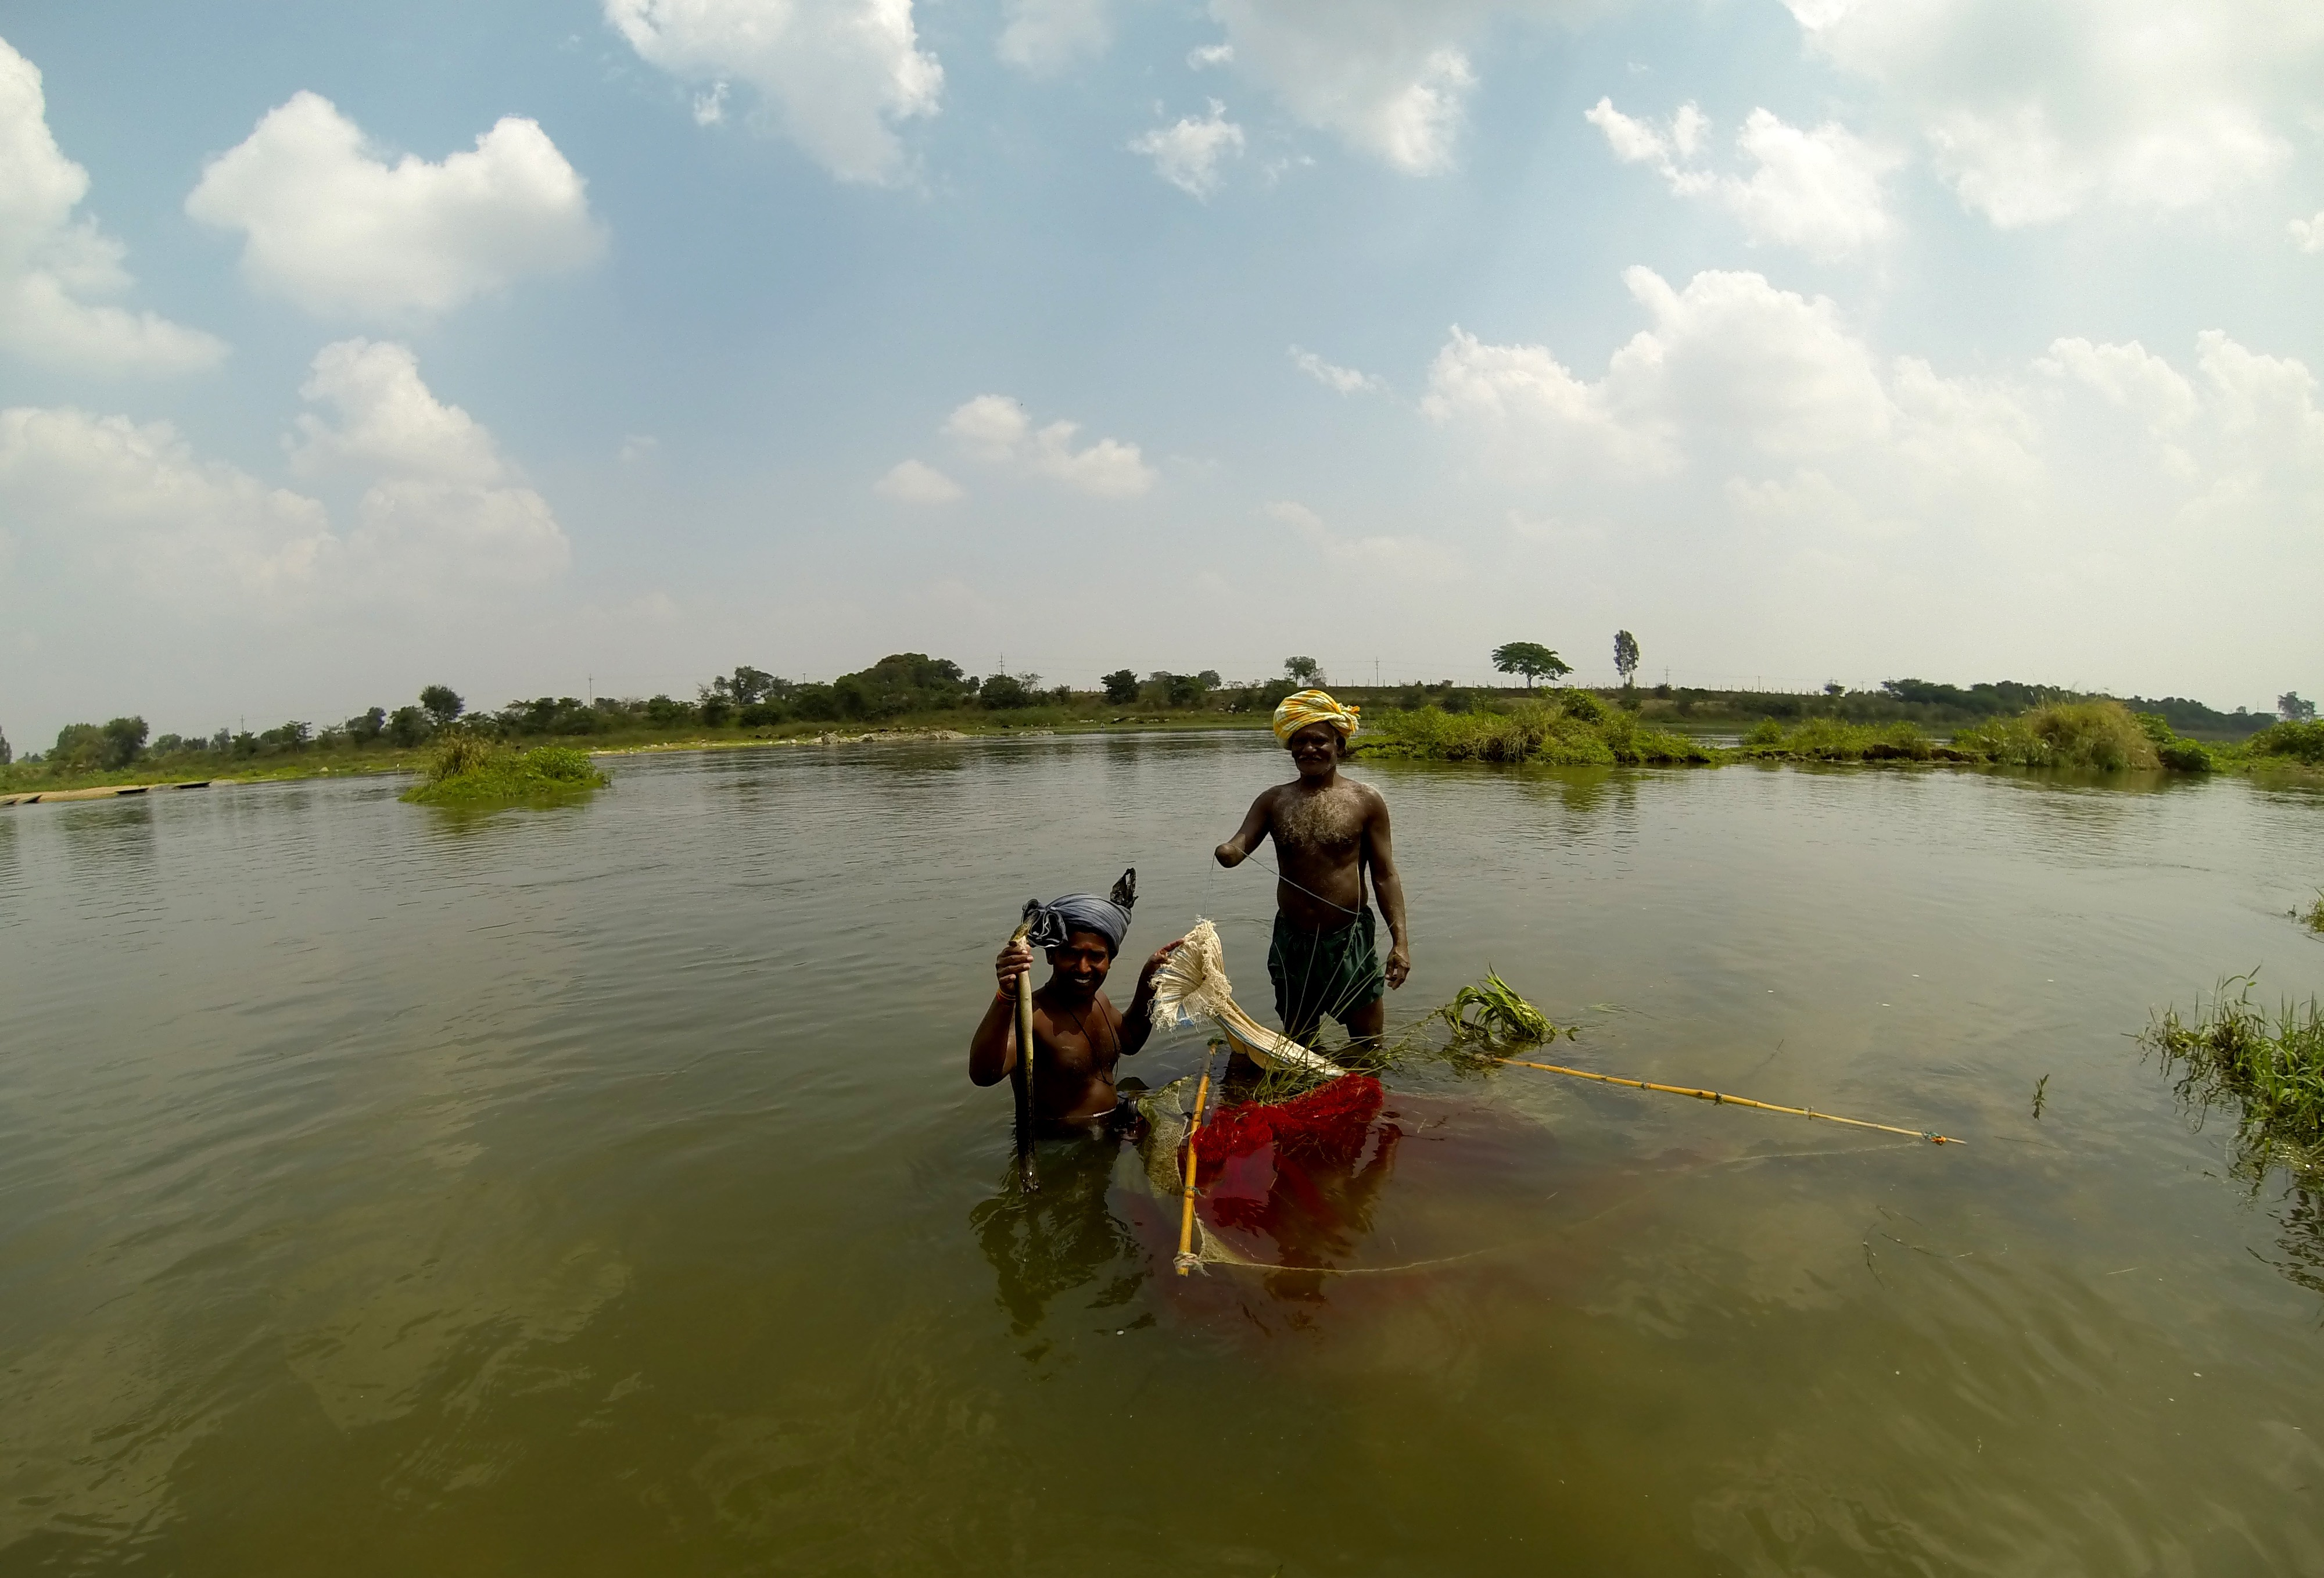 A traditional form of fishing which does not draw fishermen and otters into conflict. But these methods have almost completely disappeared. Credit: Nisarg Prakash